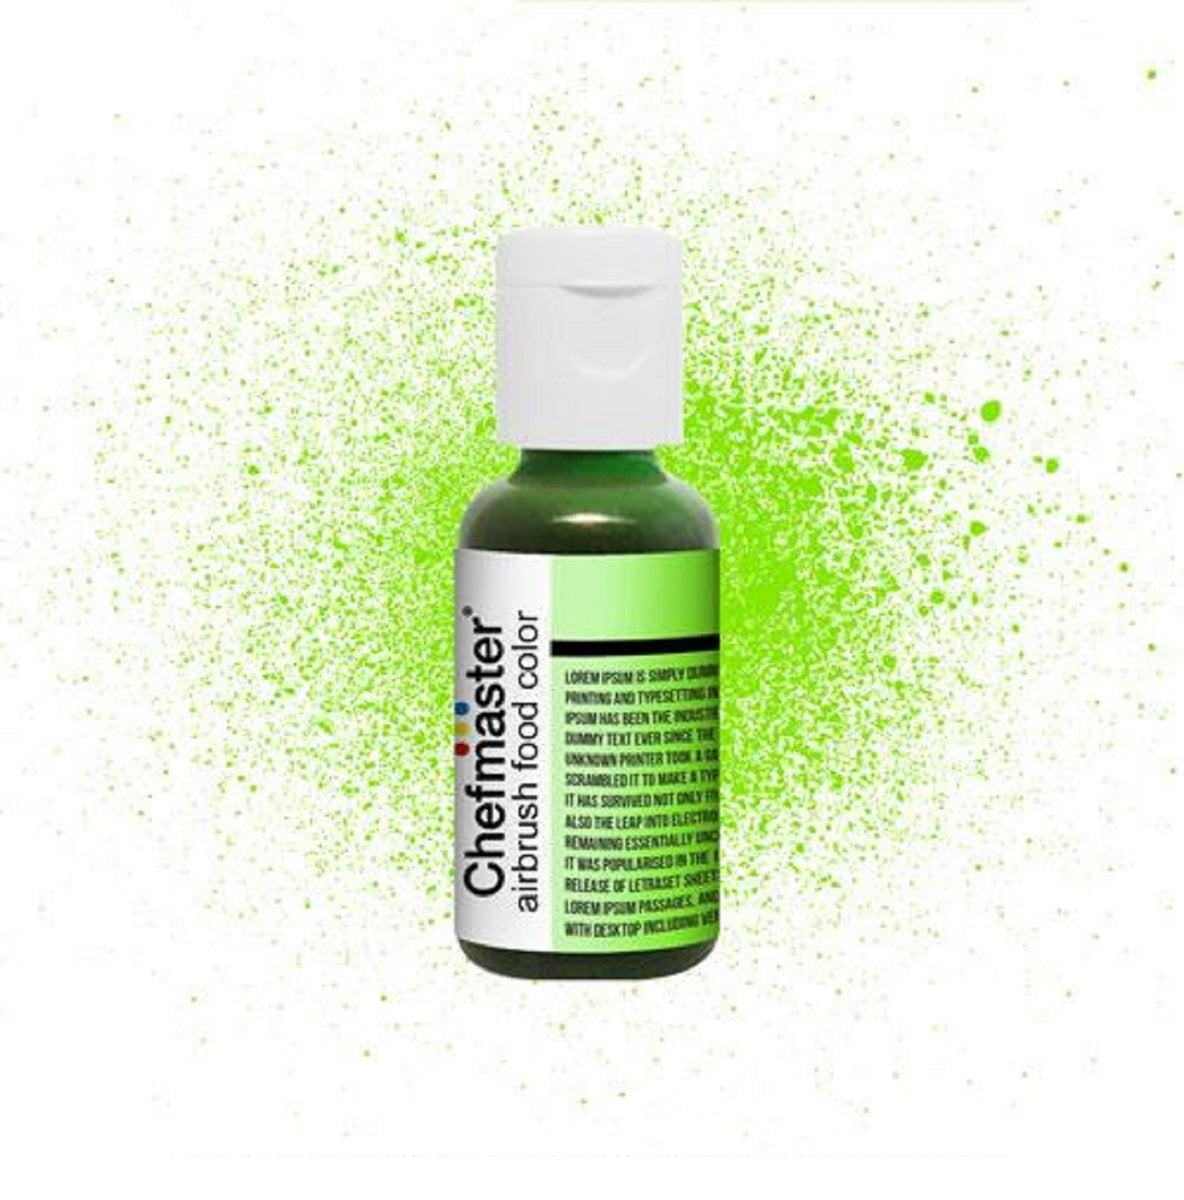 Color Chefmaster Airbrush Neon Green 0.64oz